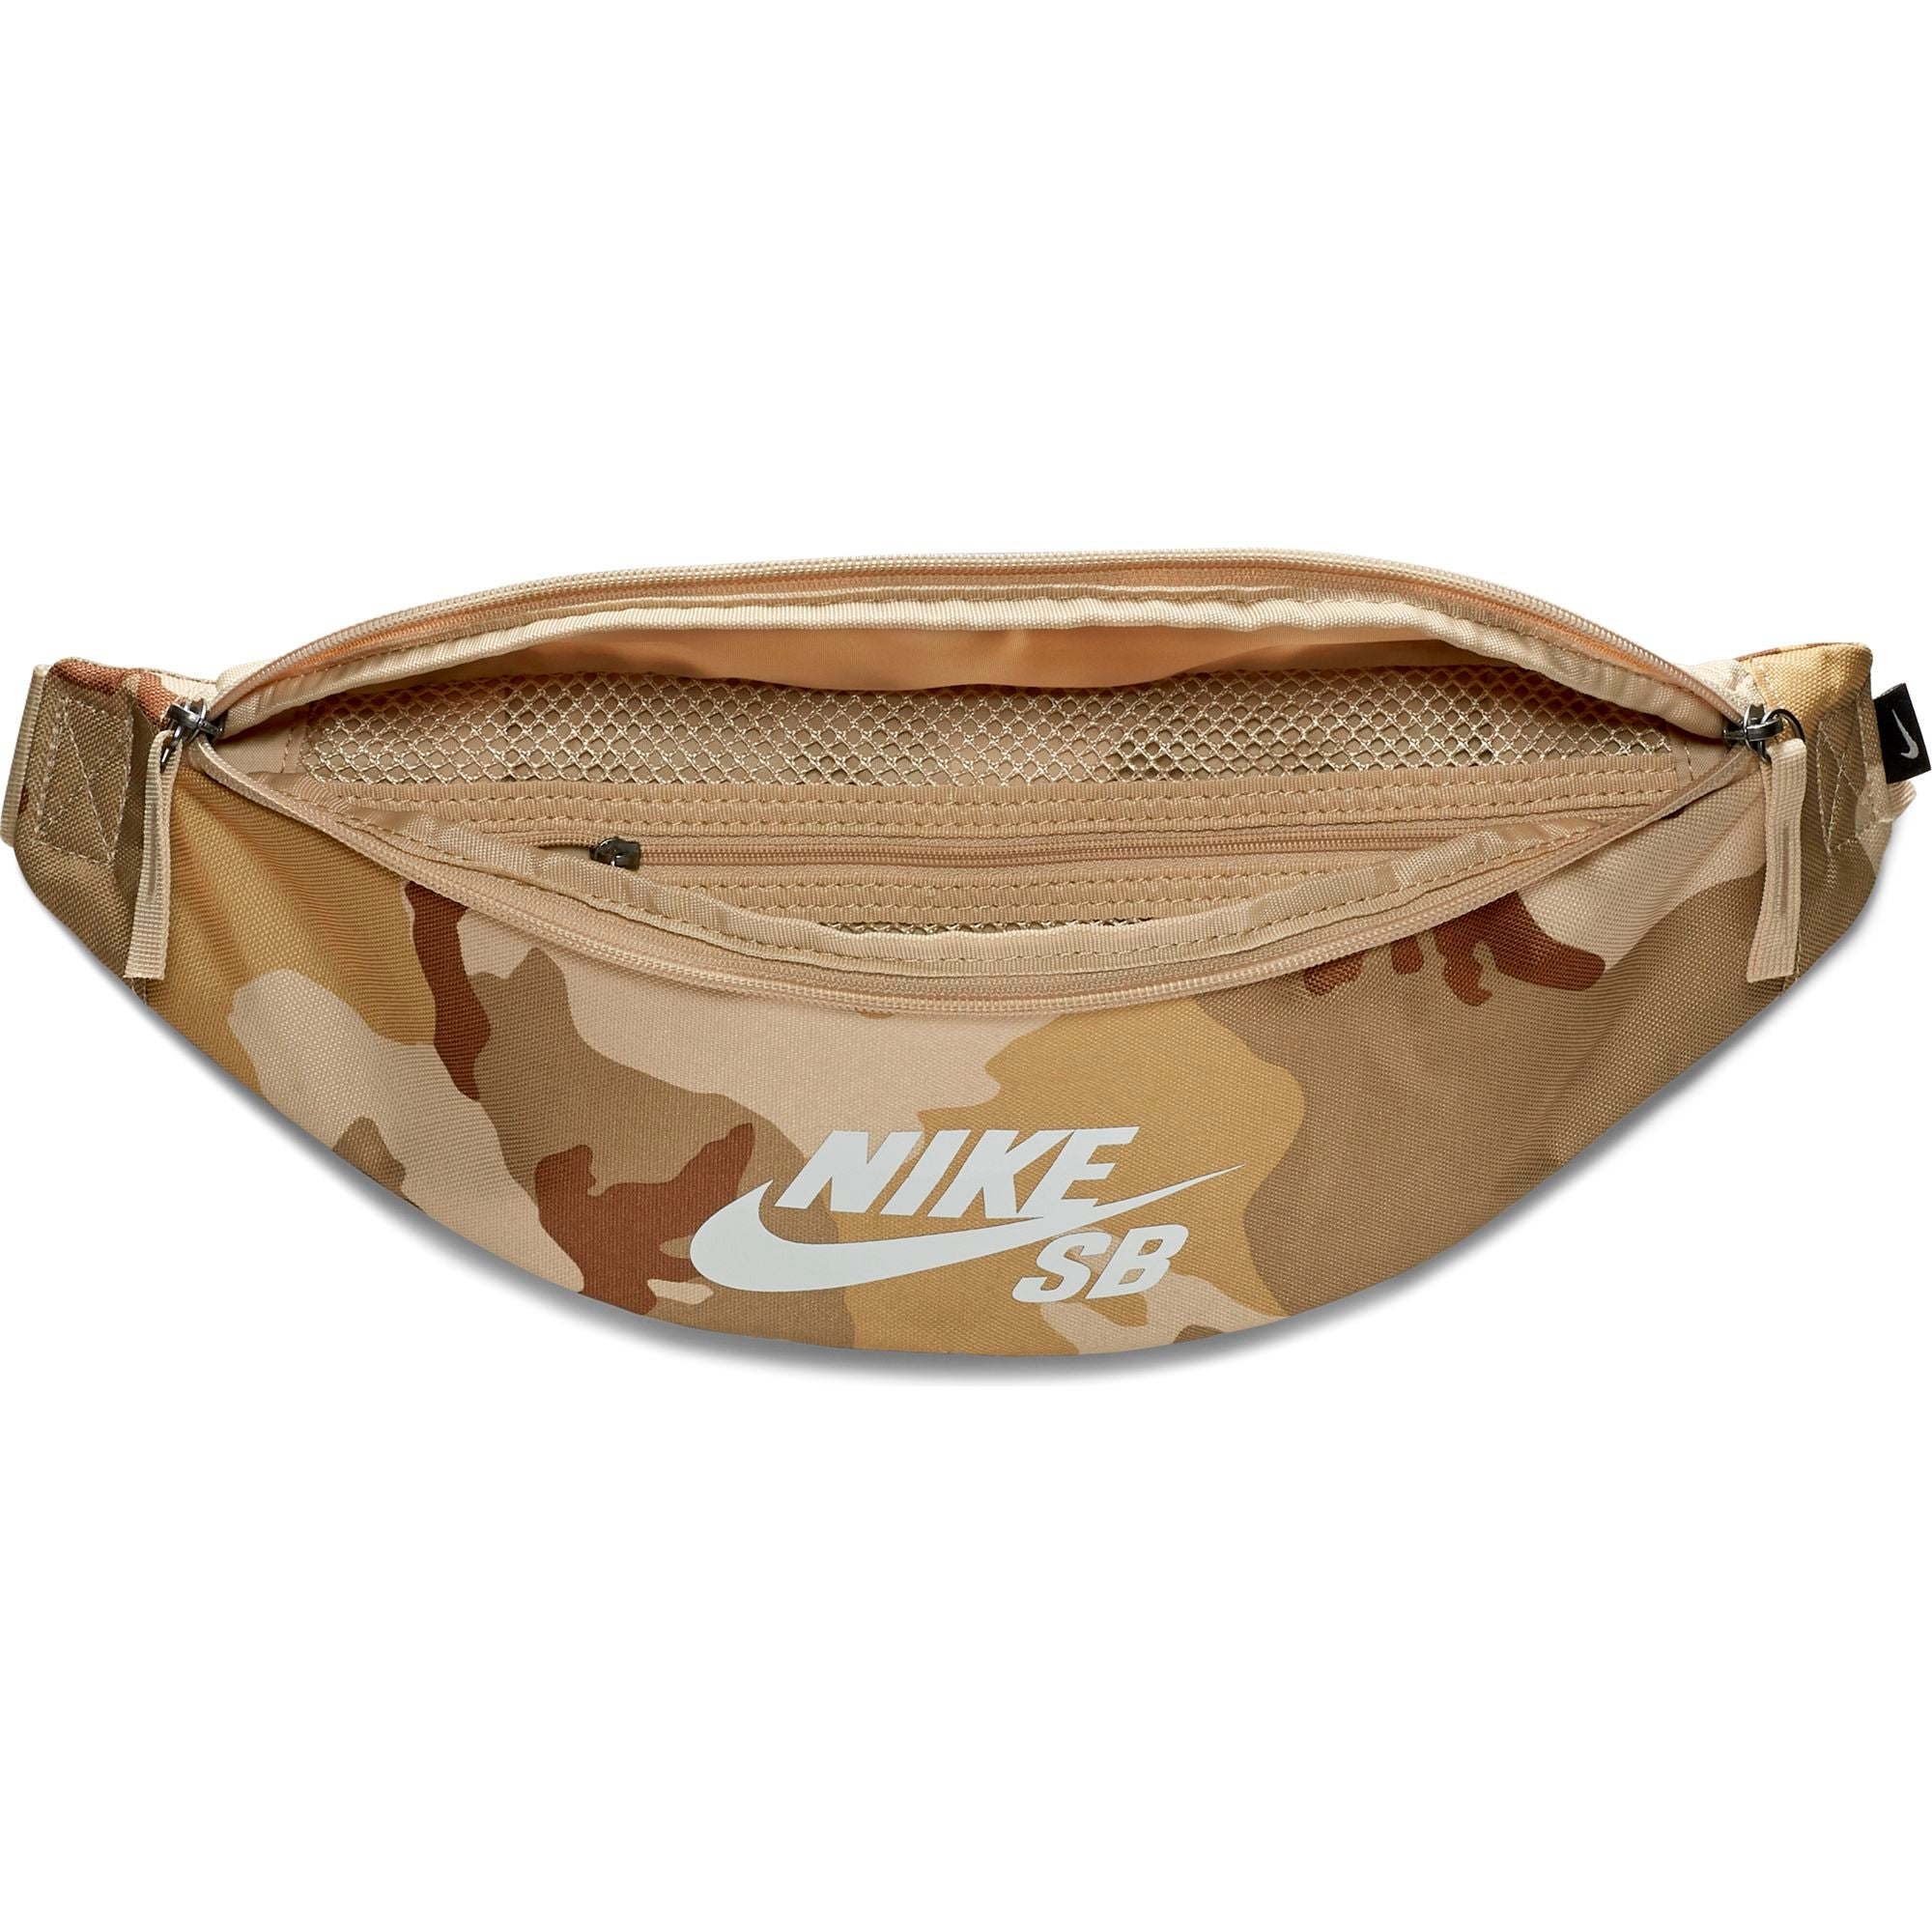 Heritage Printed Hip Pack Desert/ Camo